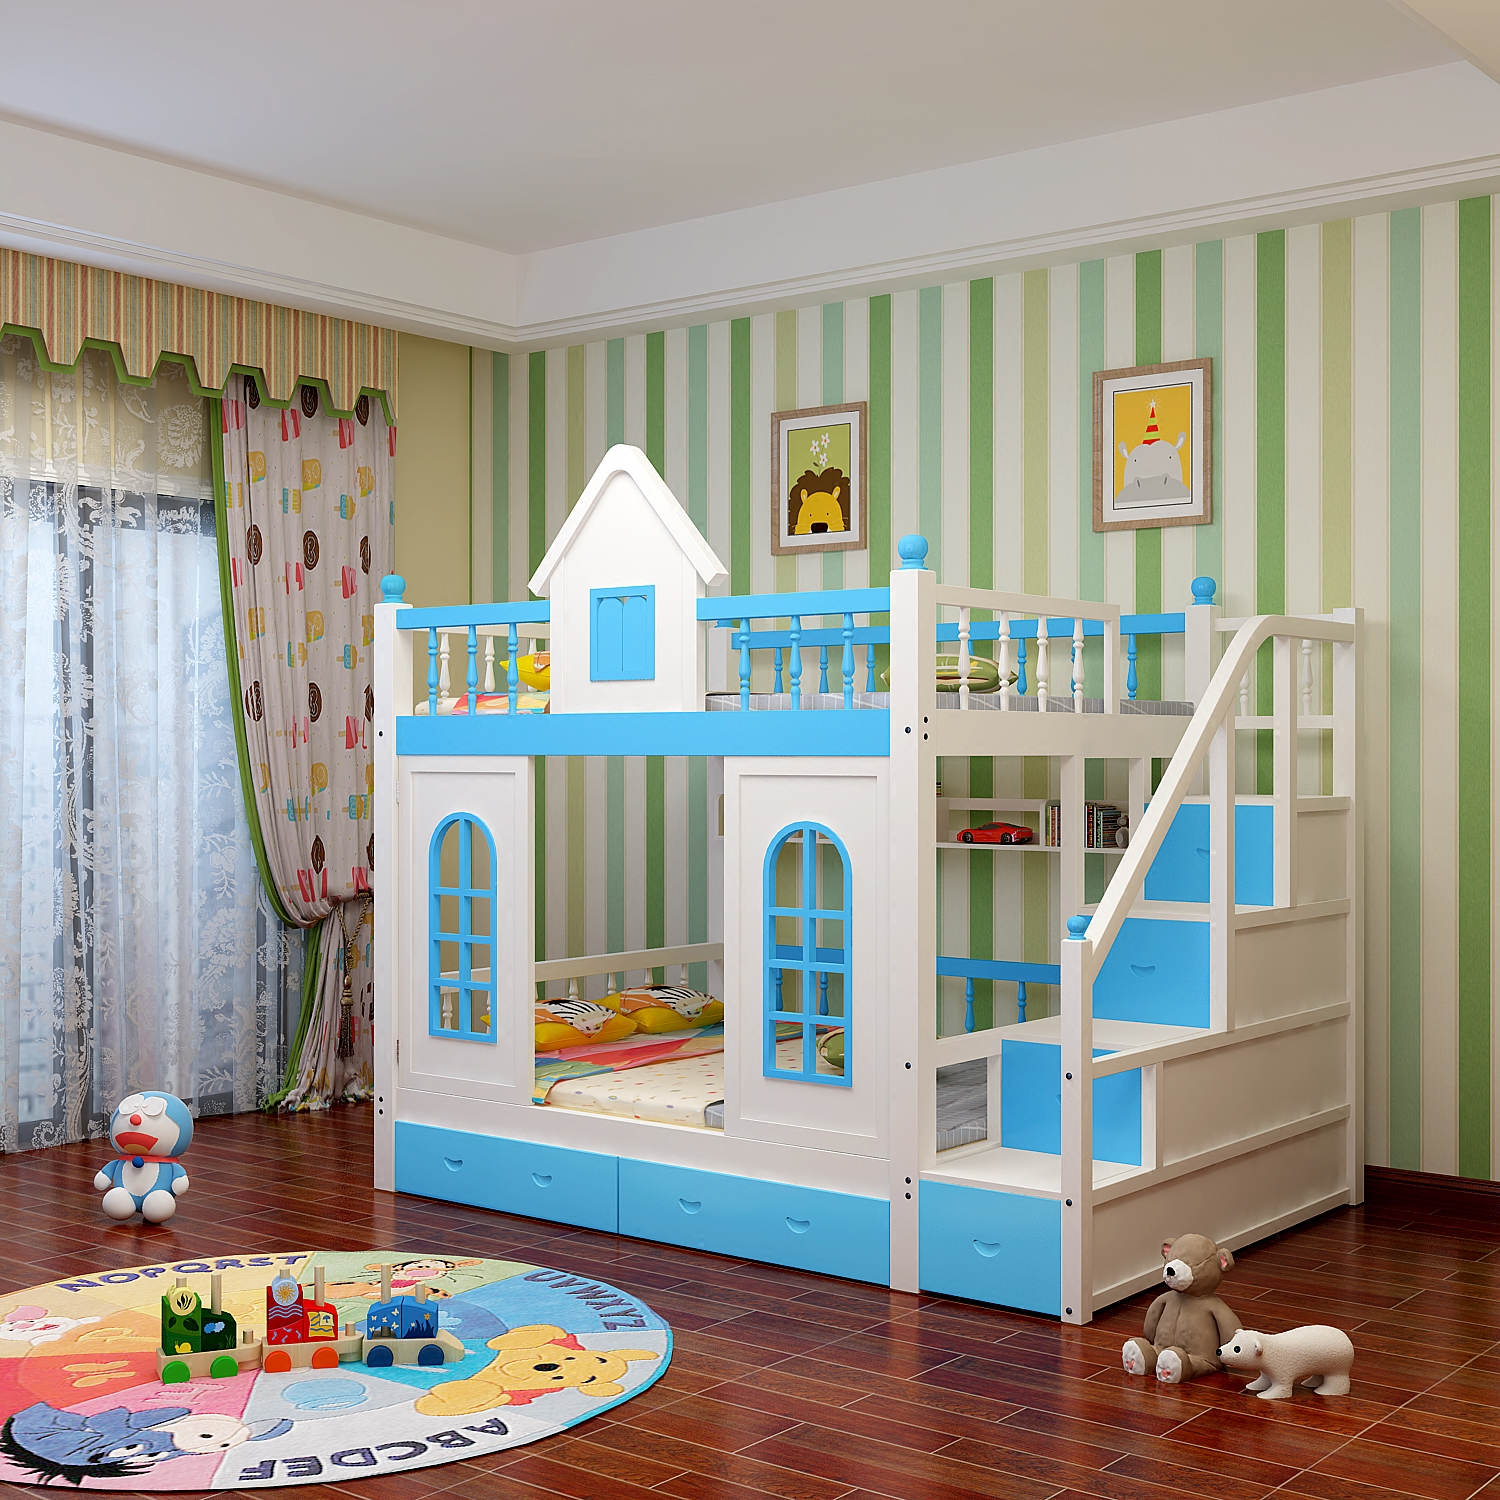 The children bed wood bunk bed double bed STRATONS mother Princess Bed multifunctional desk with ladder cabinet slide bed